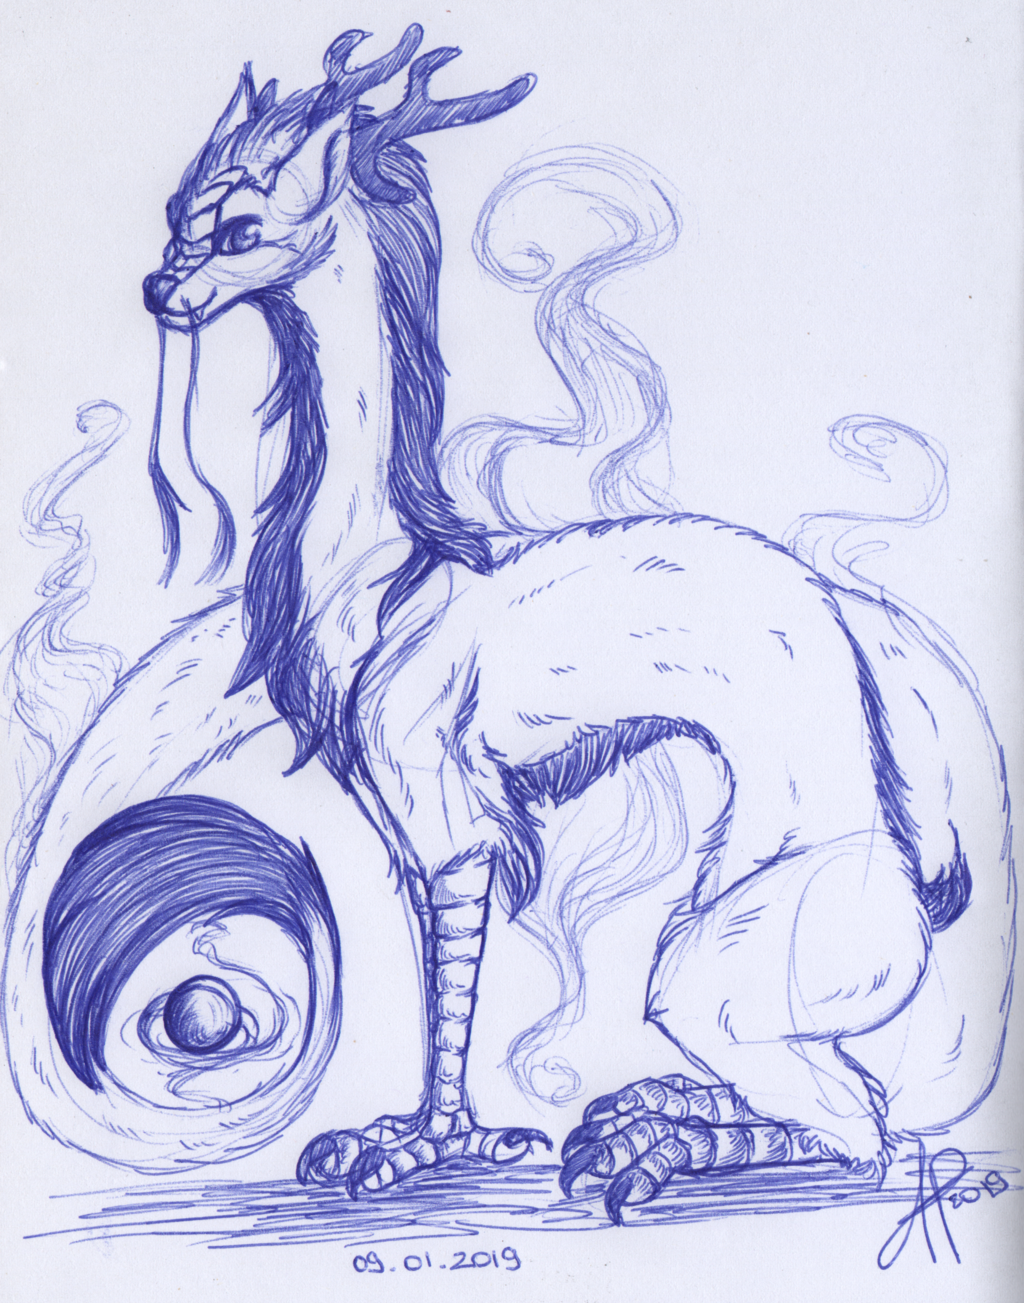 Most recent image: Chinese dragon doodle